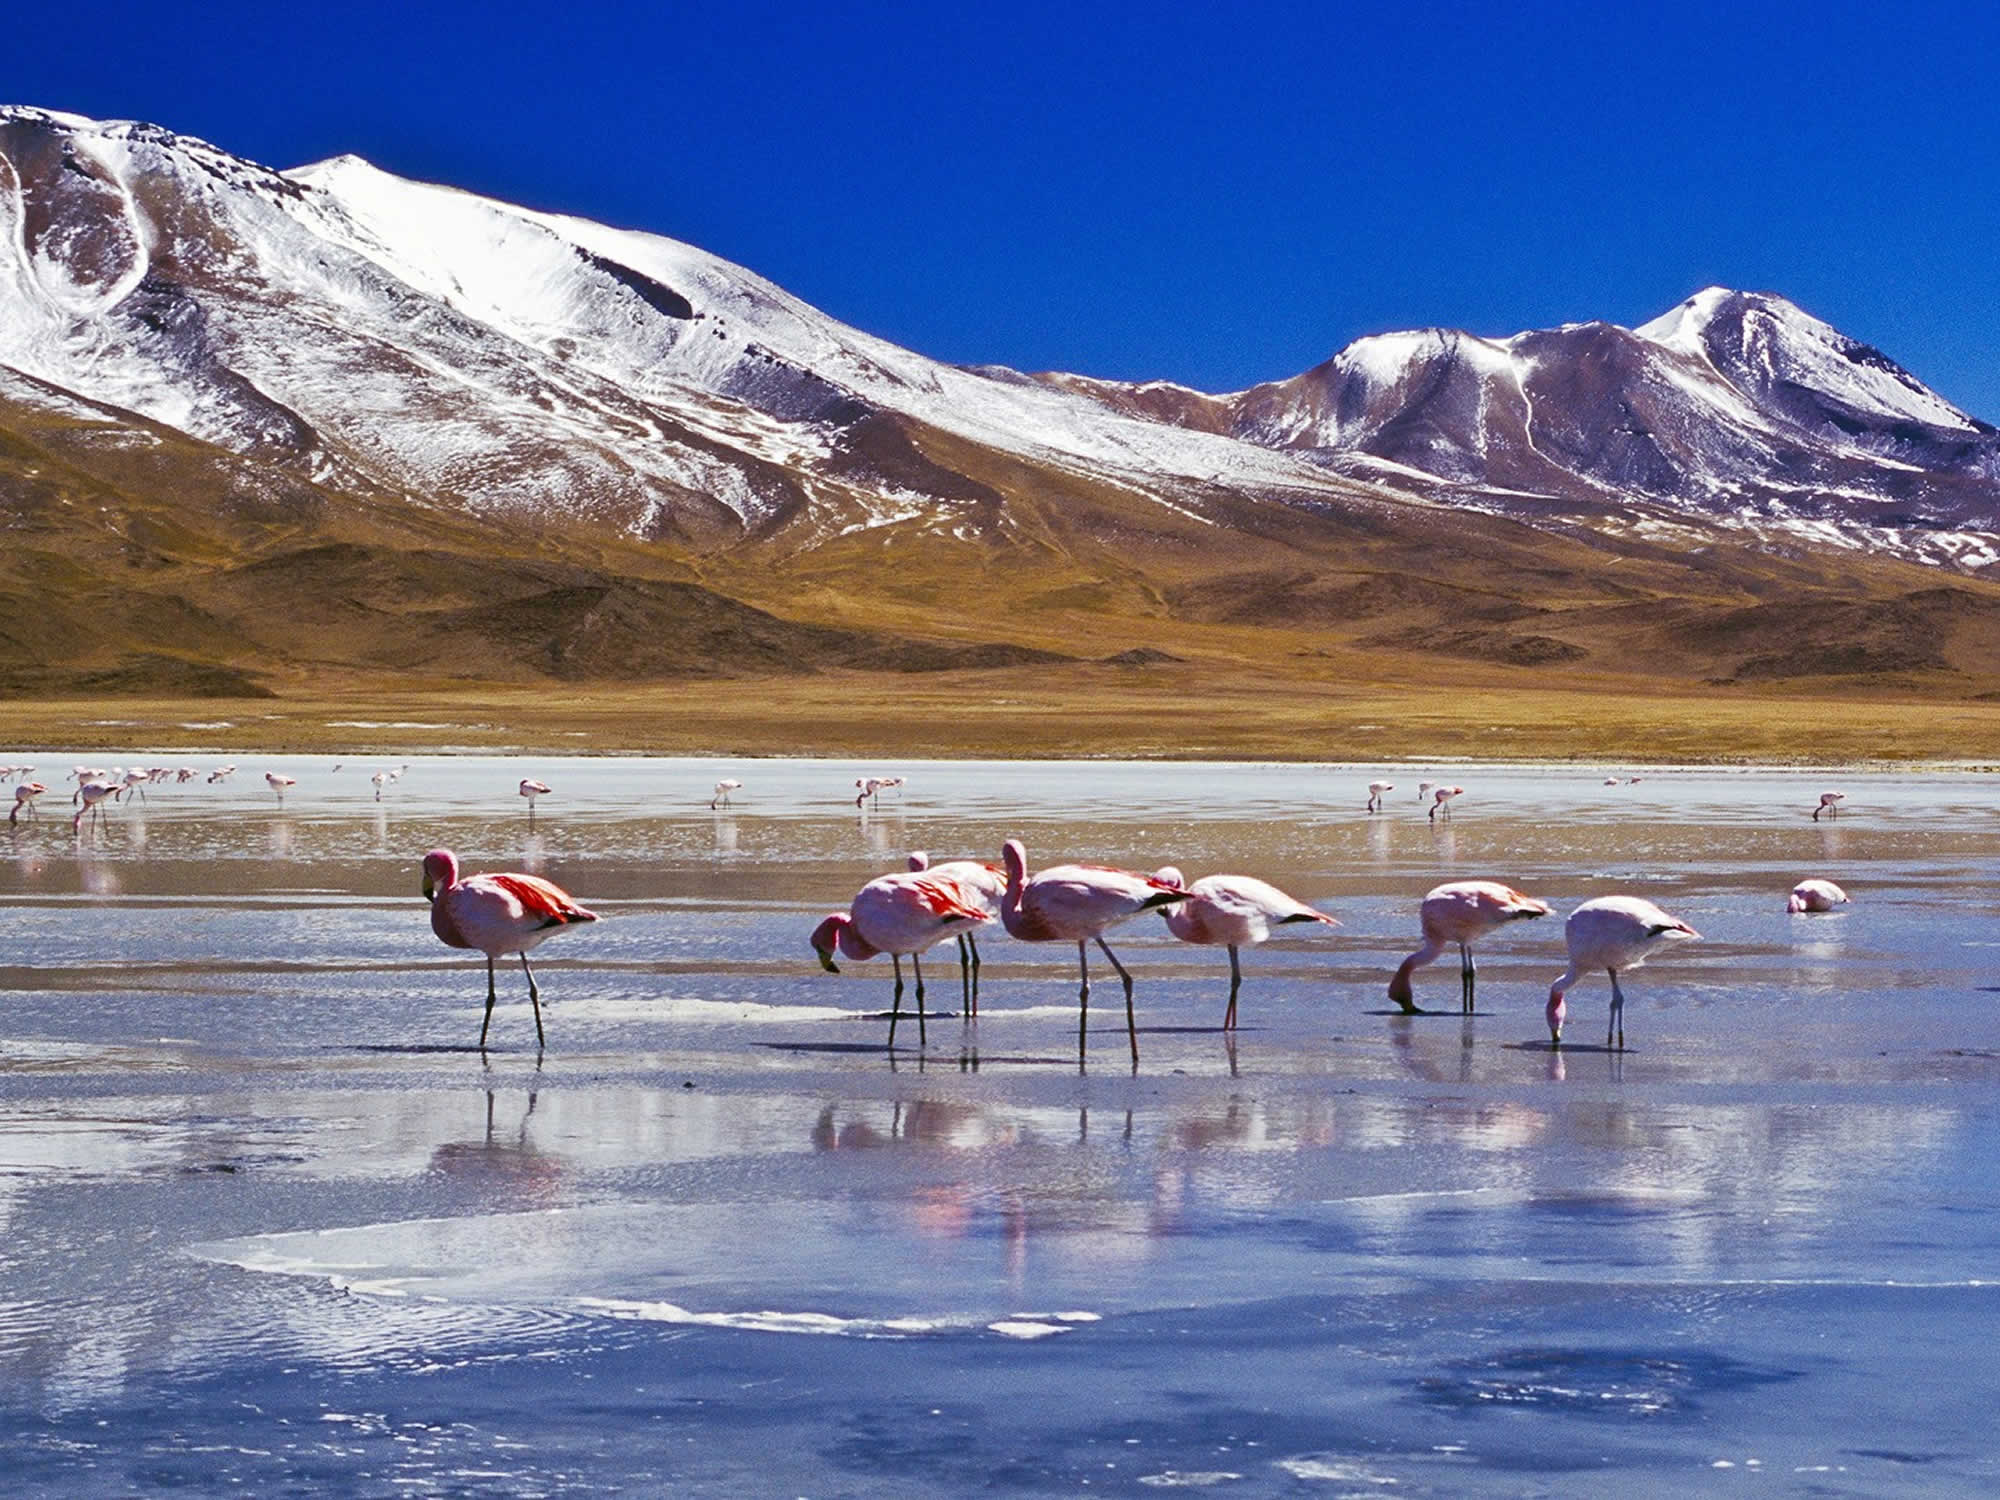 Flamingos stand in the water of the Red lagoon